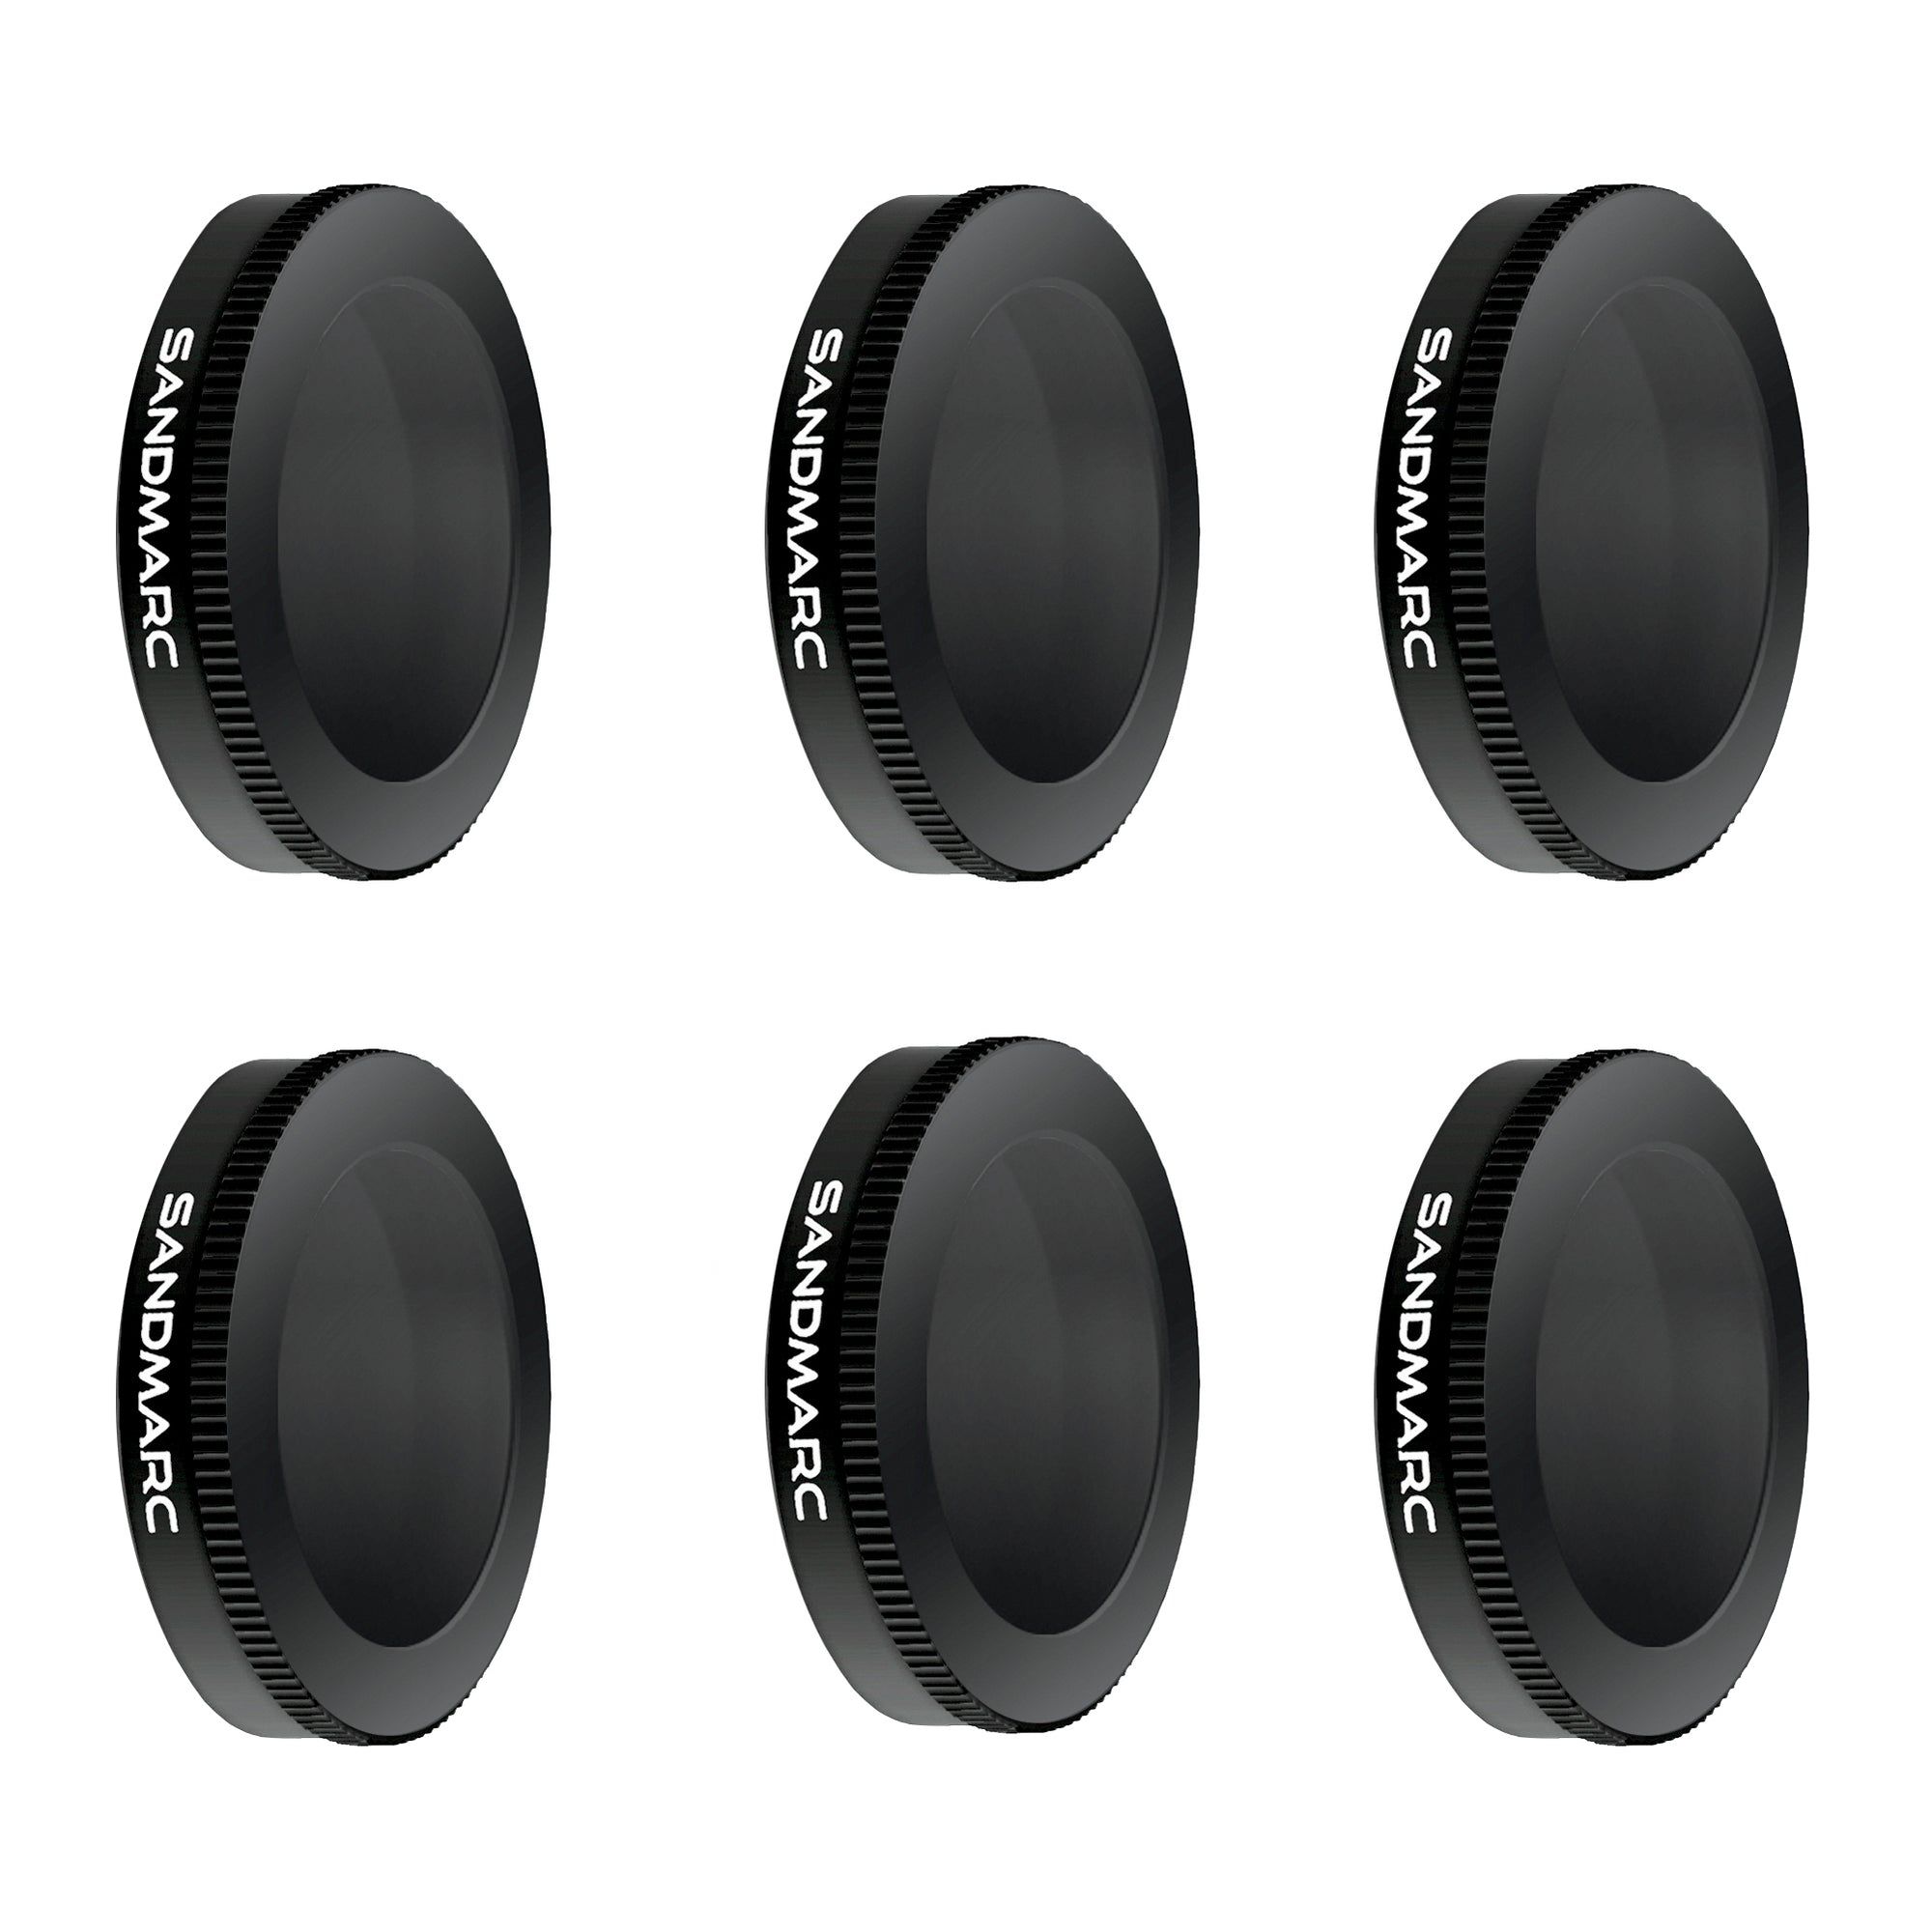 ND4 SANDMARC Aerial Filters for DJI Mavic Pro /& Platinum ND16 and Polarizer Filter Set ND8